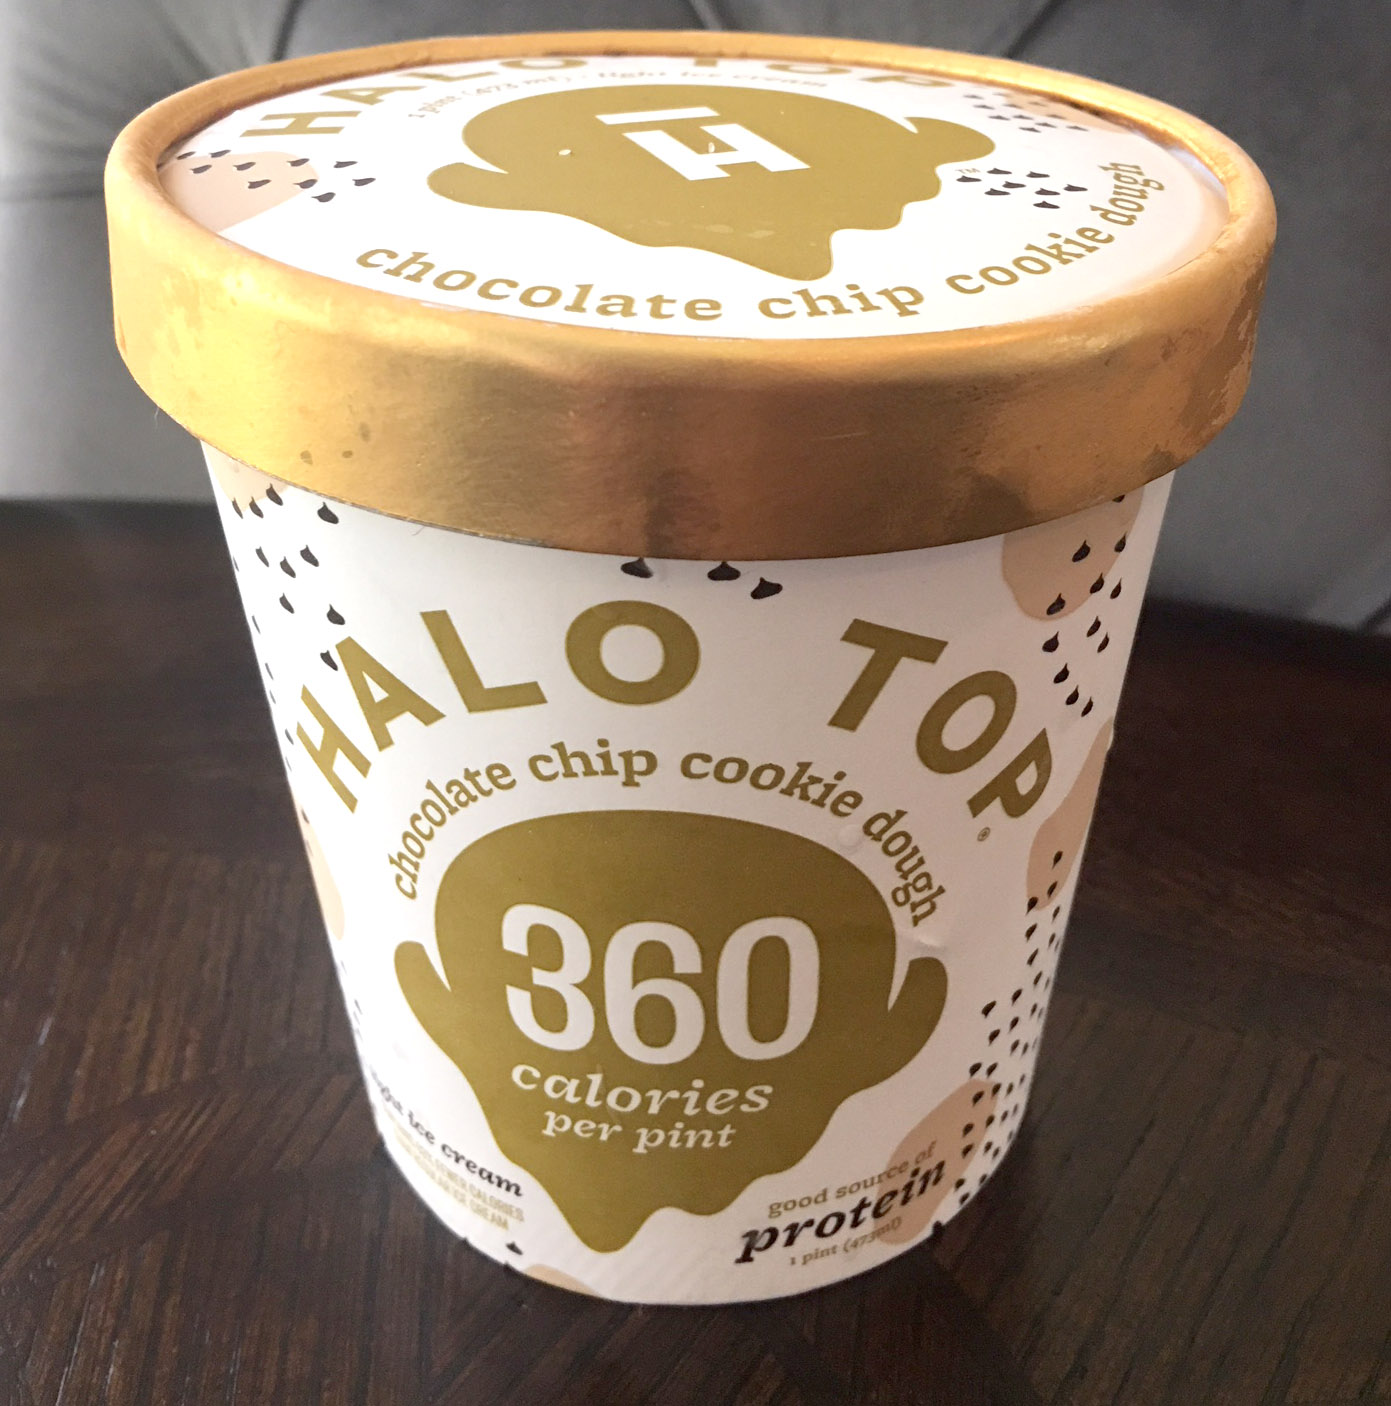 // Halo Top - Chocolate Chip Cookie Dough Ice Cream